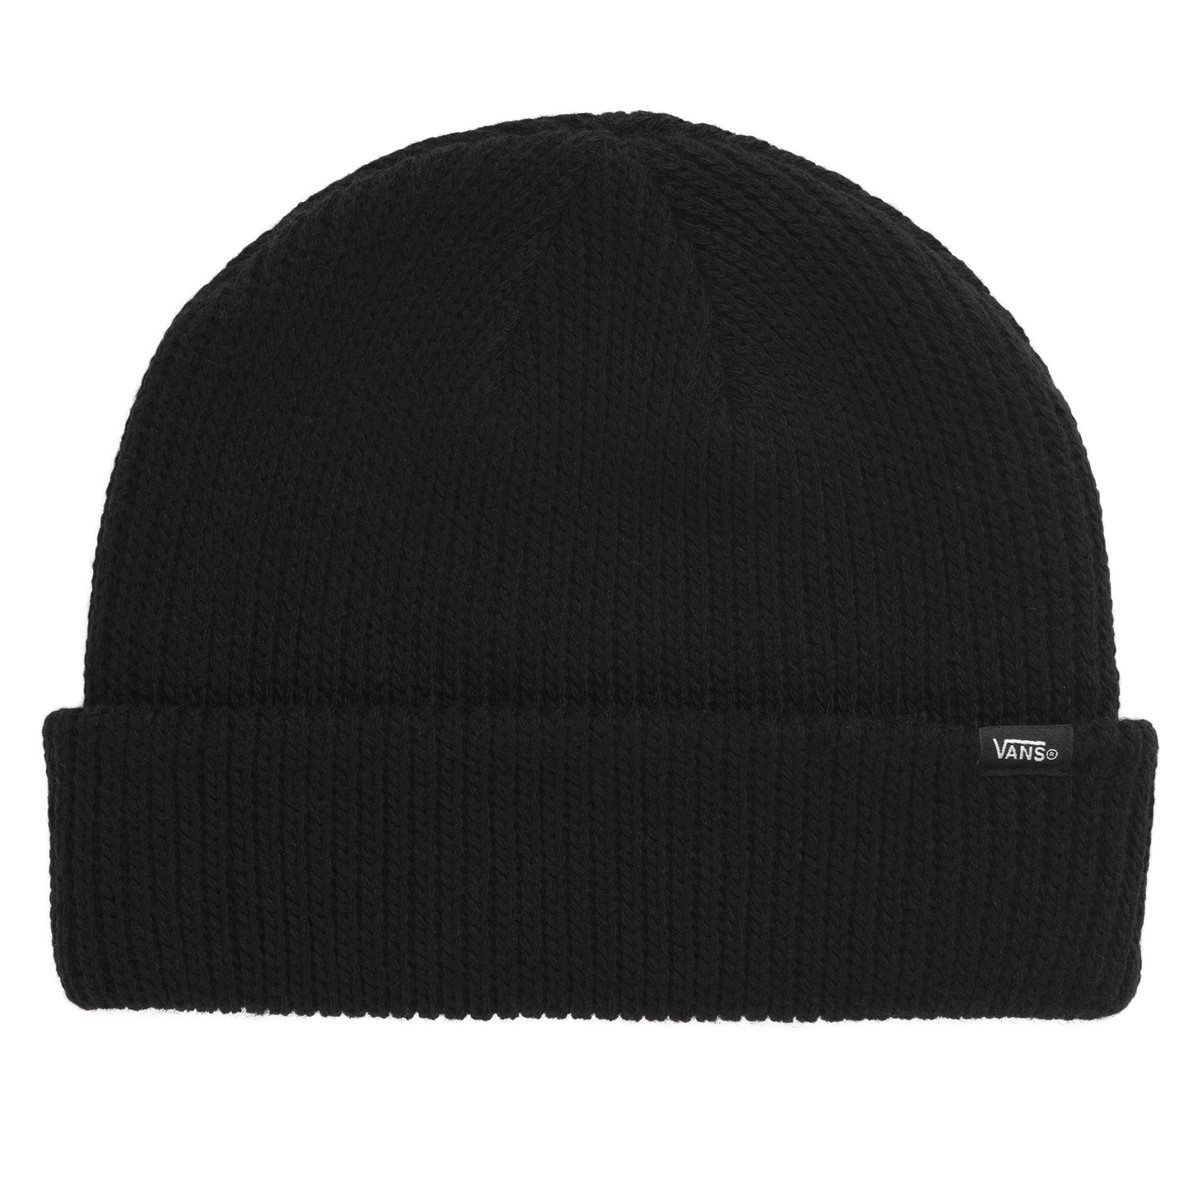 Core Basics Beanie in Black. Previous. default view  ALT1 7b9b0eeff2e